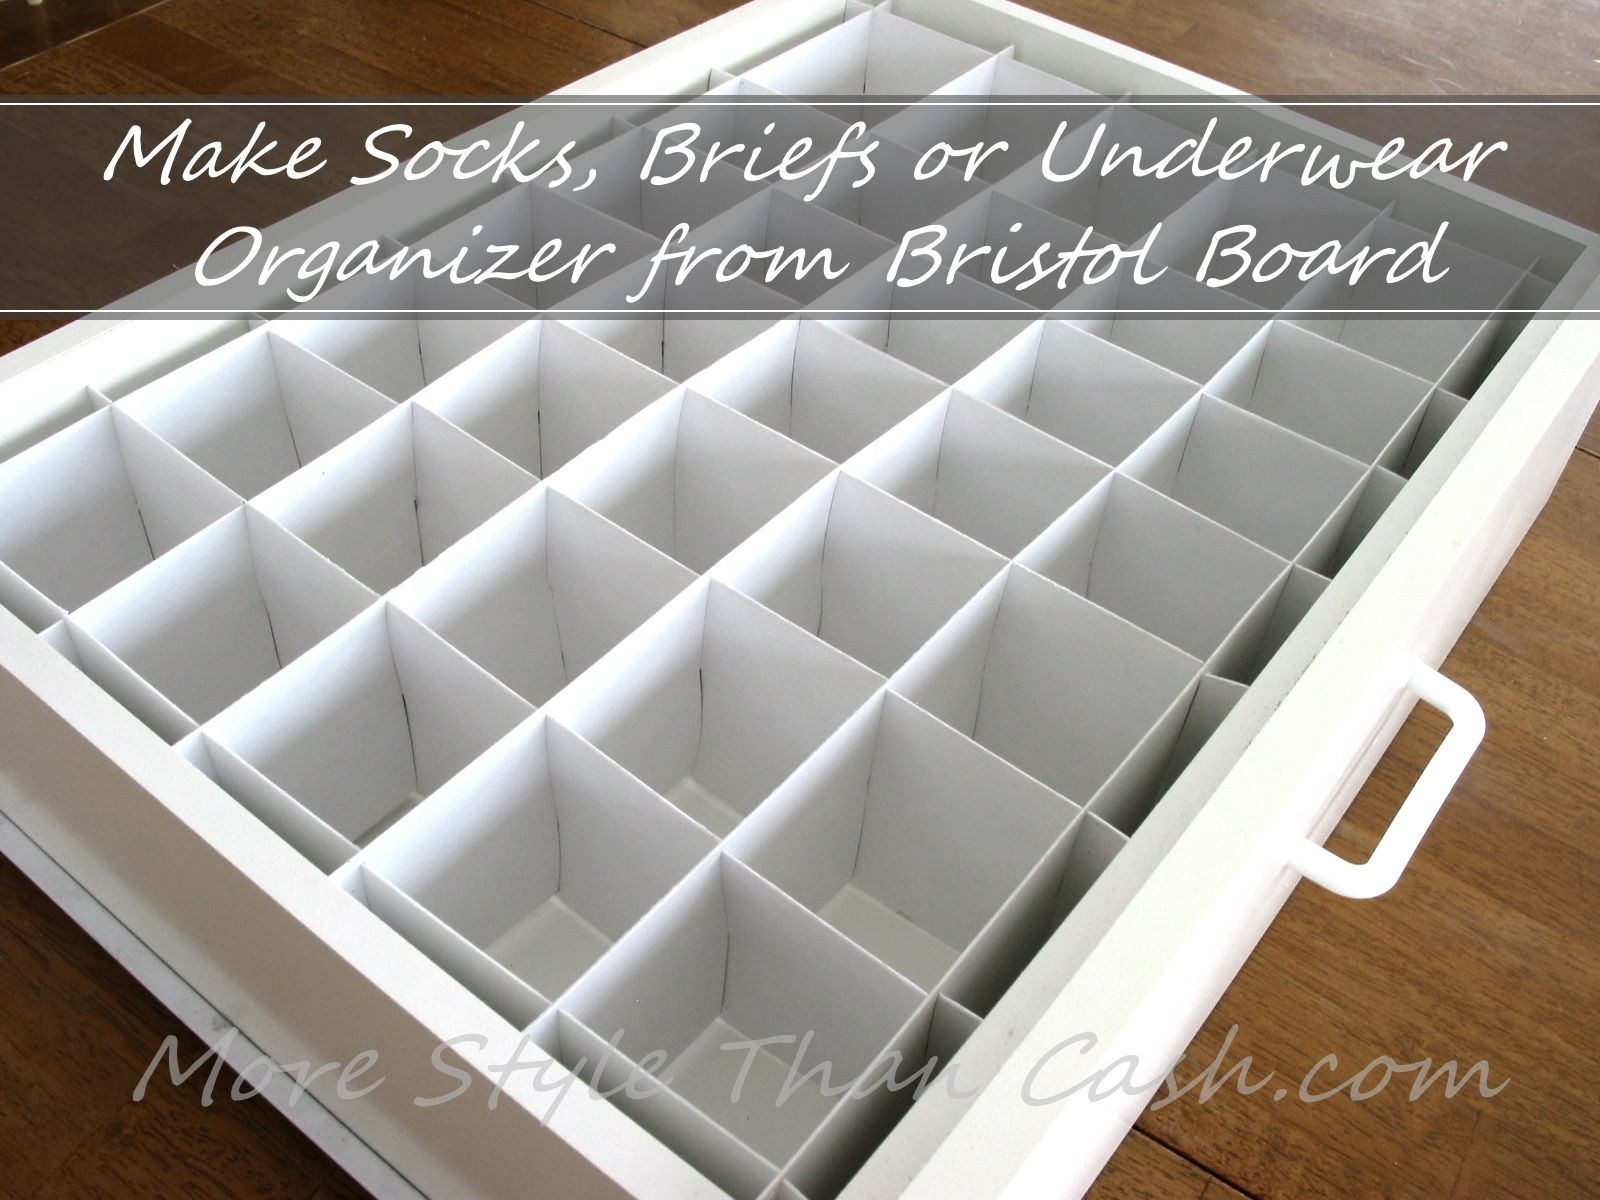 App Drawer Organizer Make Socks Organizer From Bristol Board  Pinterest  Bristol